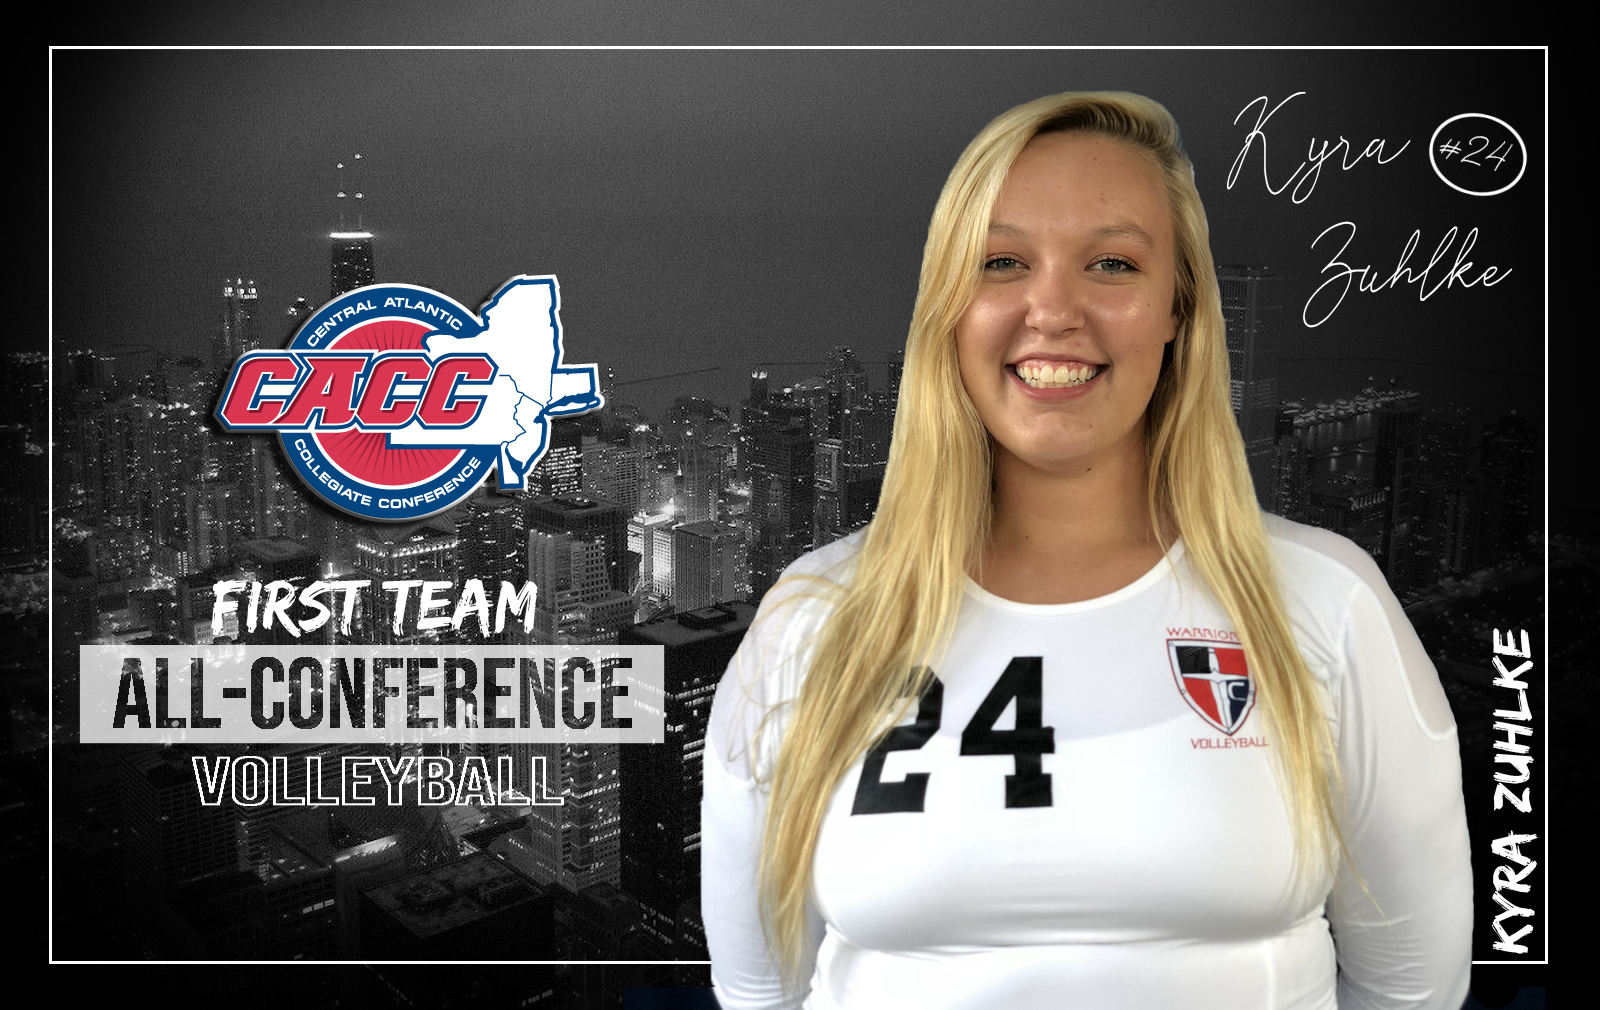 Zuhlke Named to CACC All-Conference First Team - Volleyball Wins Team Sportsmanship Award